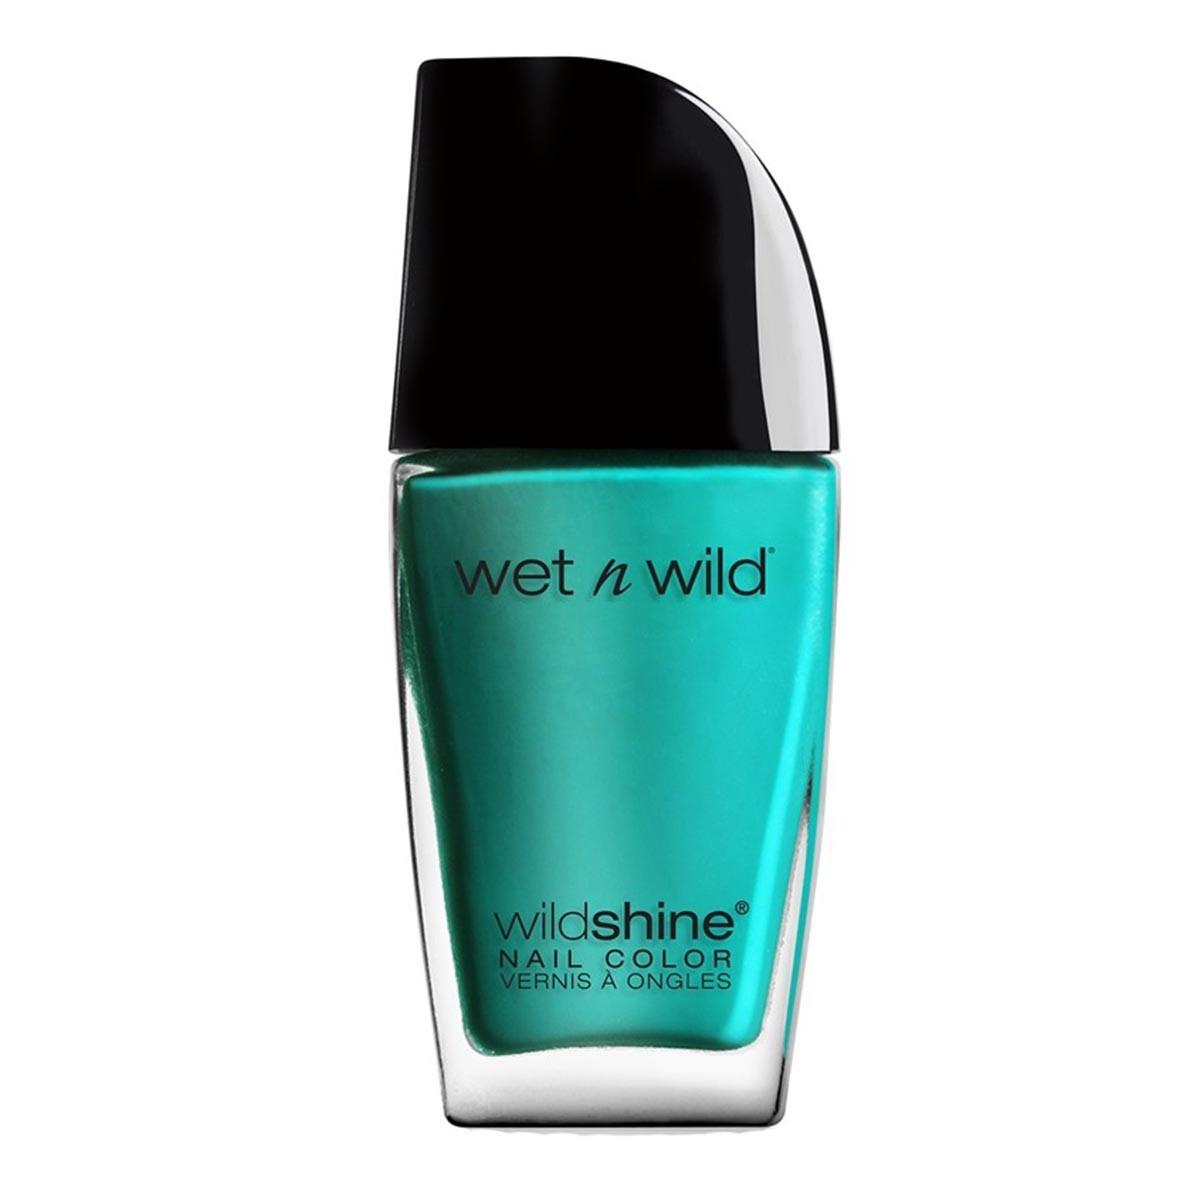 Wet n wild Wildshine Nail Color Be More Pacific